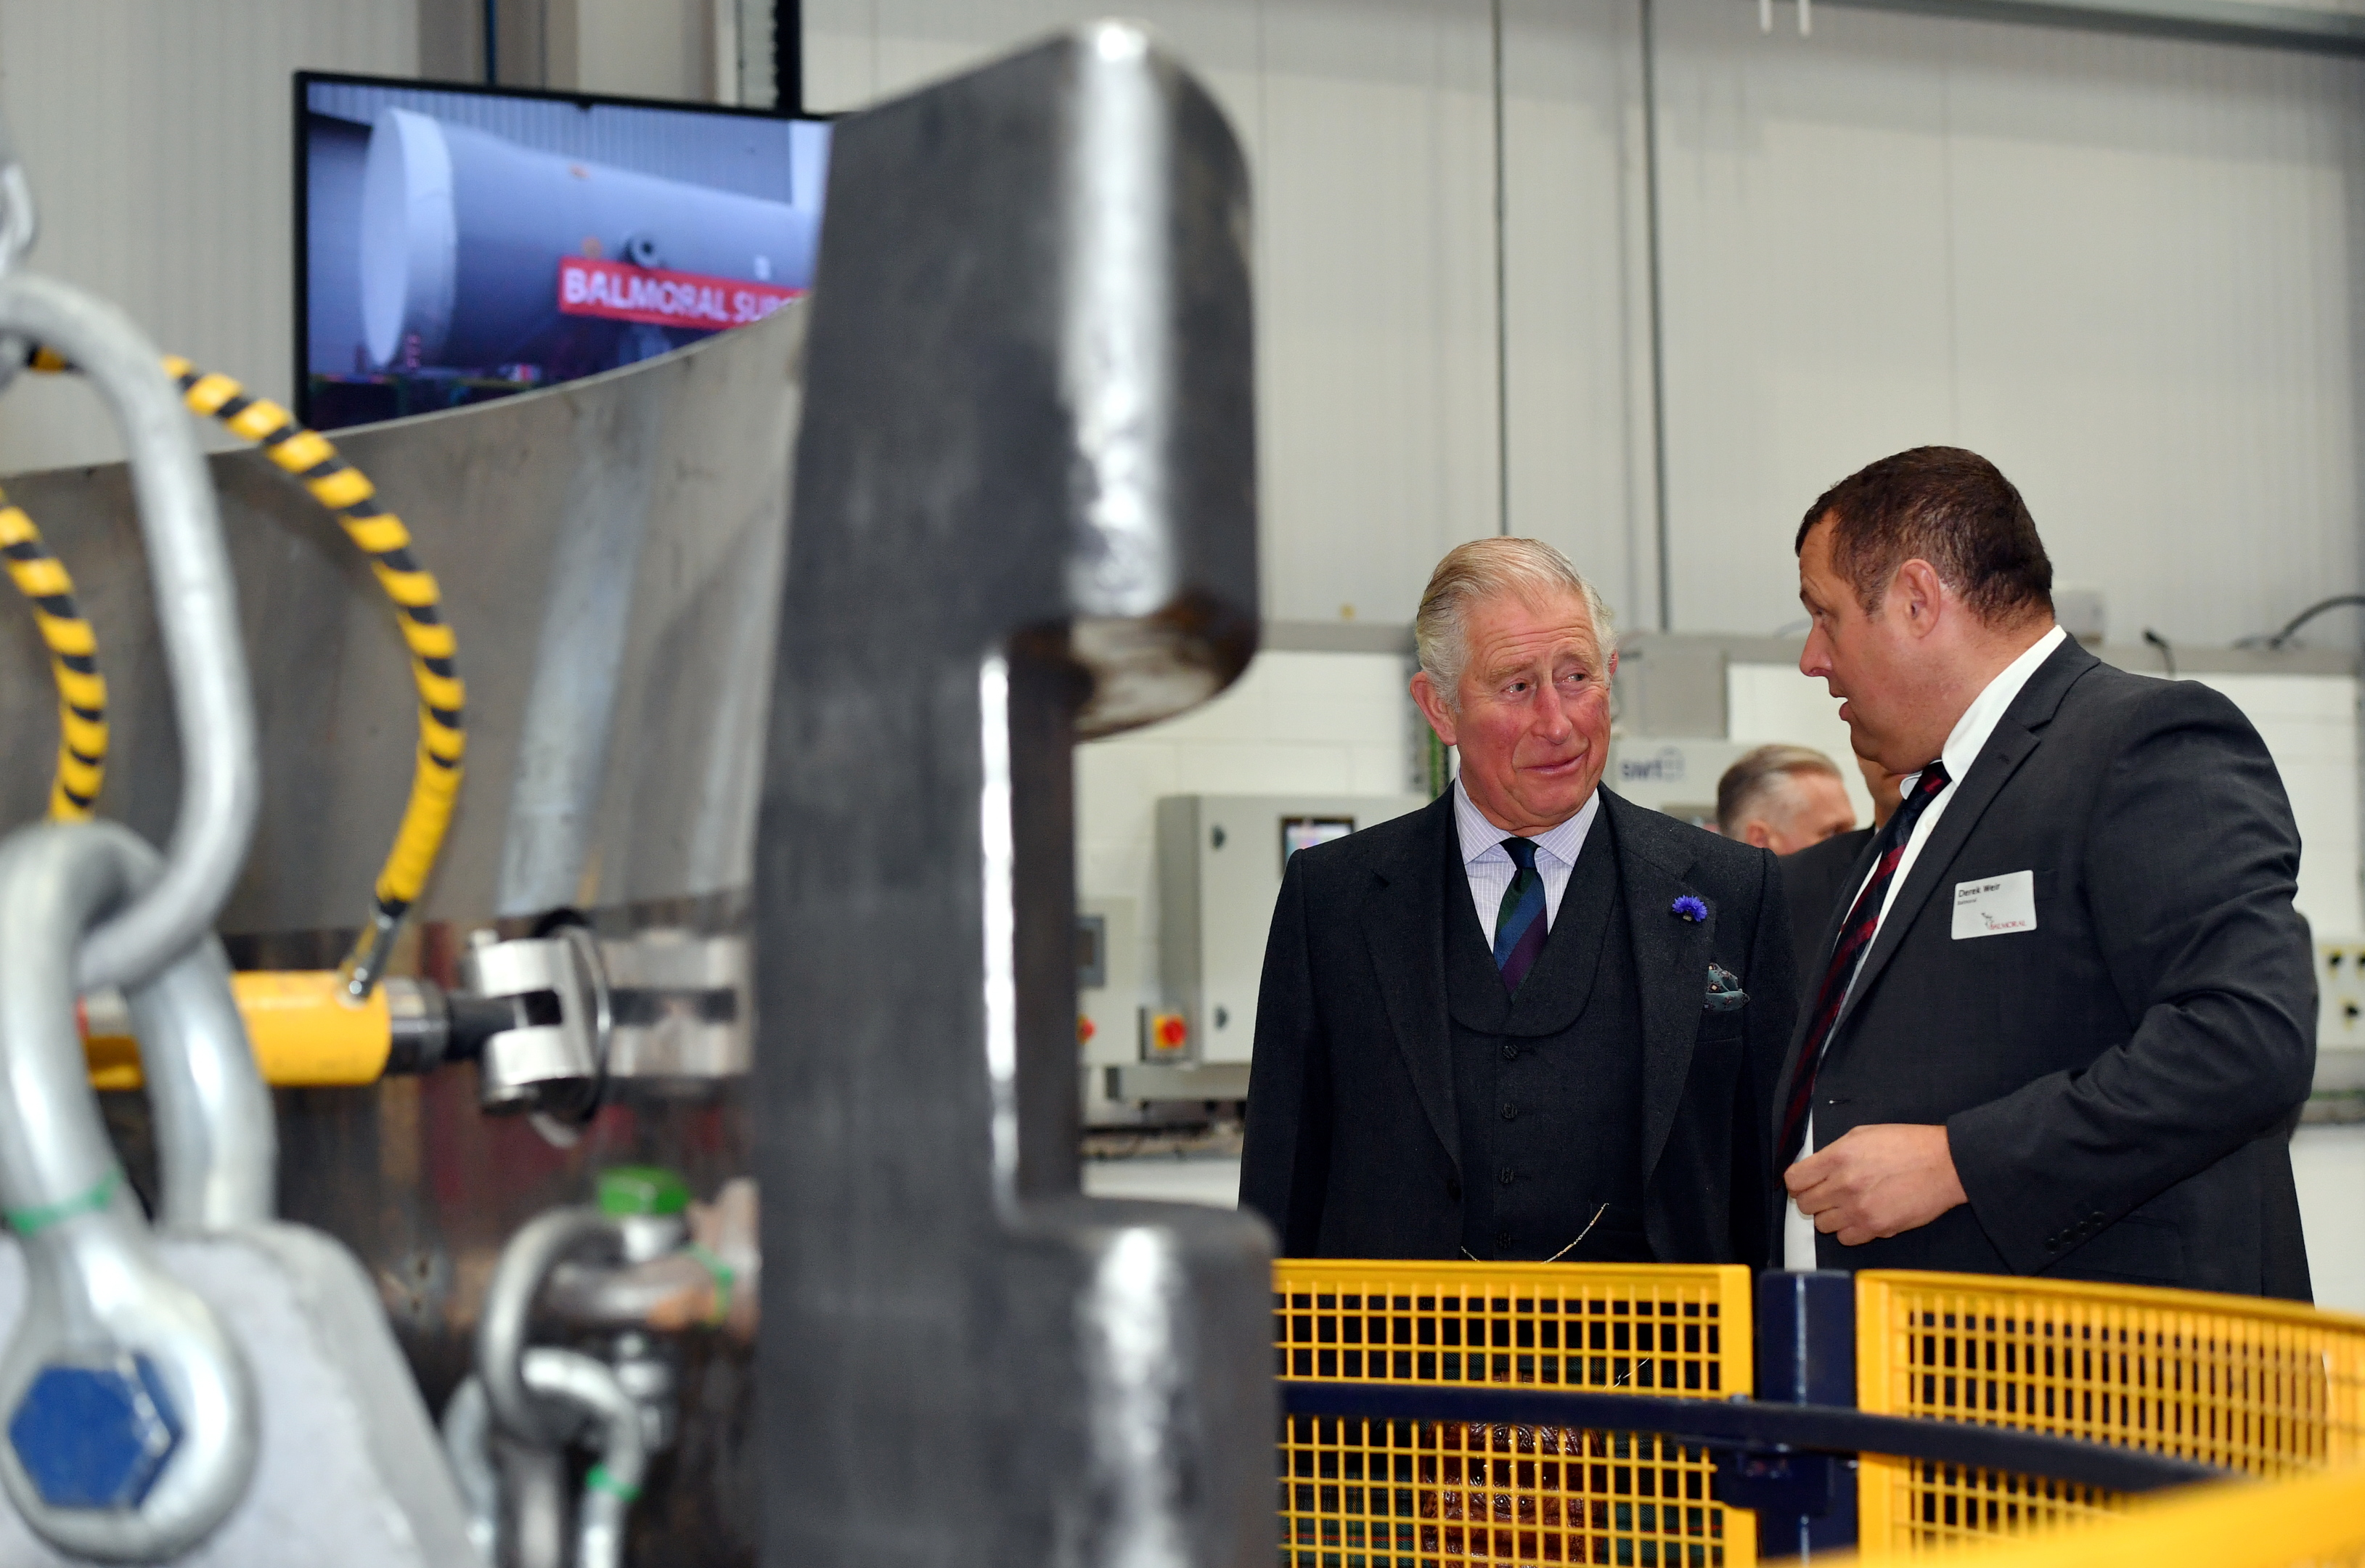 HRH Prince Charles, The Duke of Rothesay, visited Balmoral Offshore Engineering, Aberdeen to officially open the new Balmoral Subsea Test Centre.  Pictured - Prince Charles is shown around the new test centre by Derek Weir. Picture by Kami Thomson.